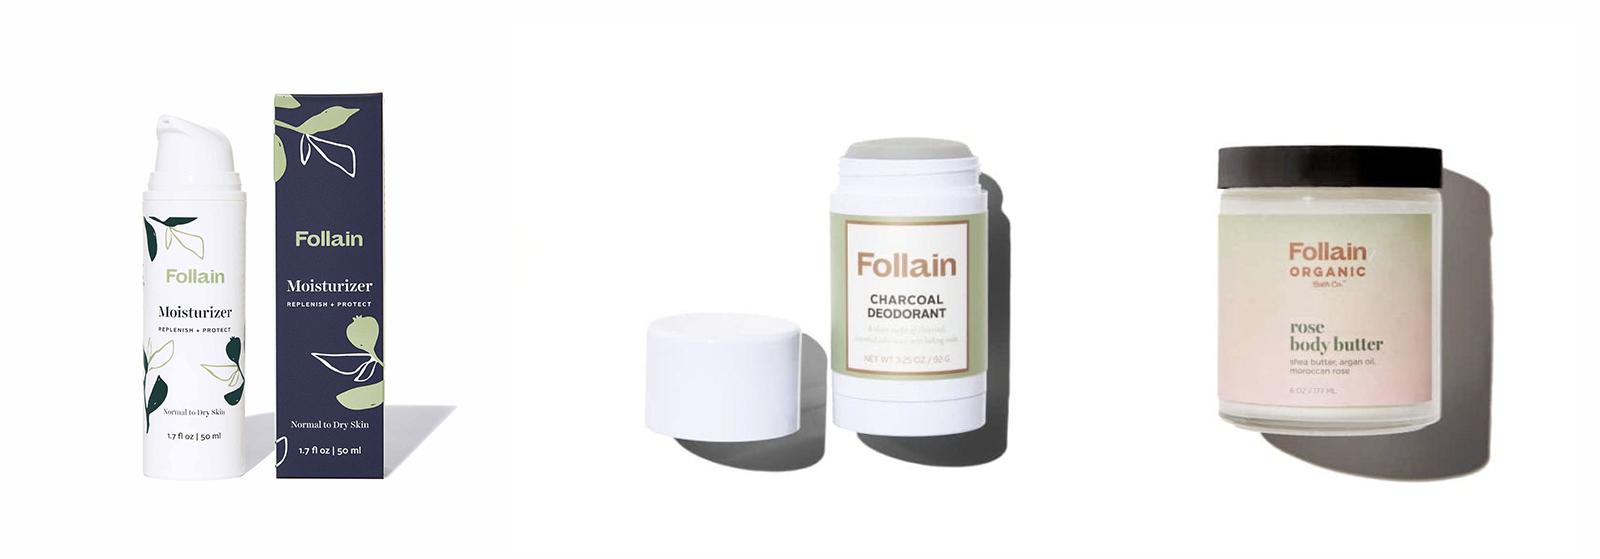 gifts to introduce someone to clean beauty from follain